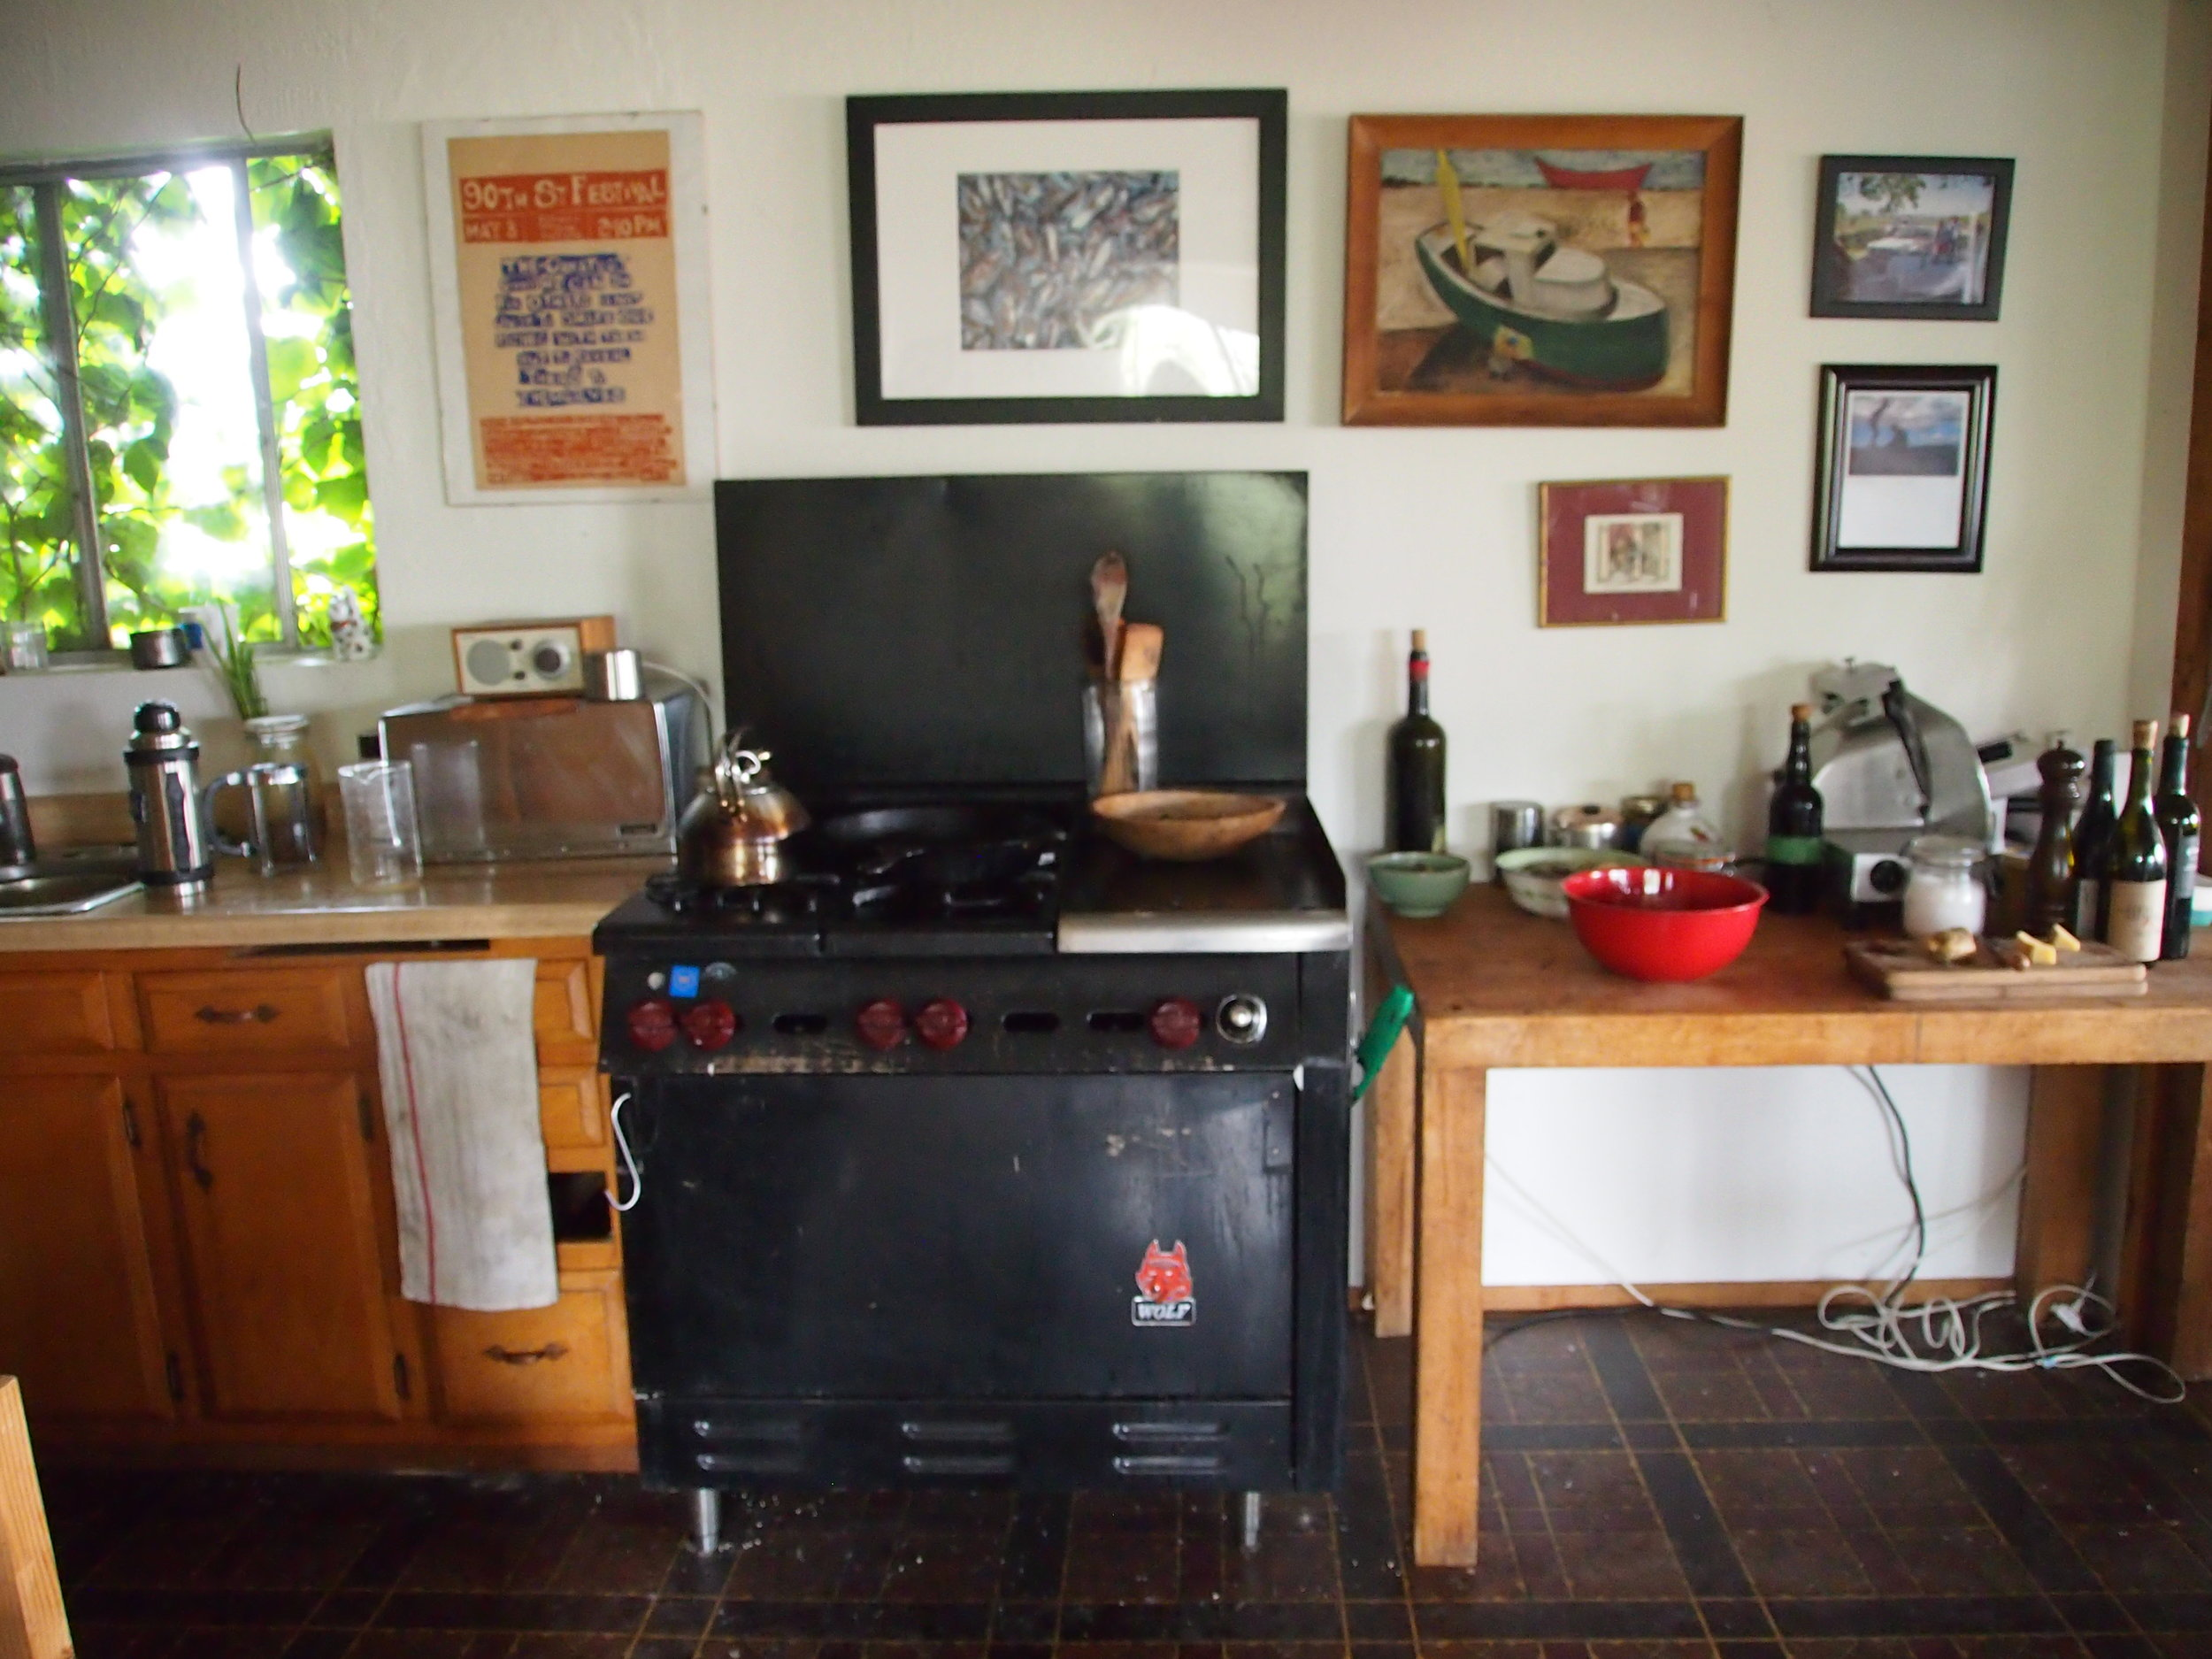 Scholium-Wines-Abe-Schoener-Kitchen.jpg